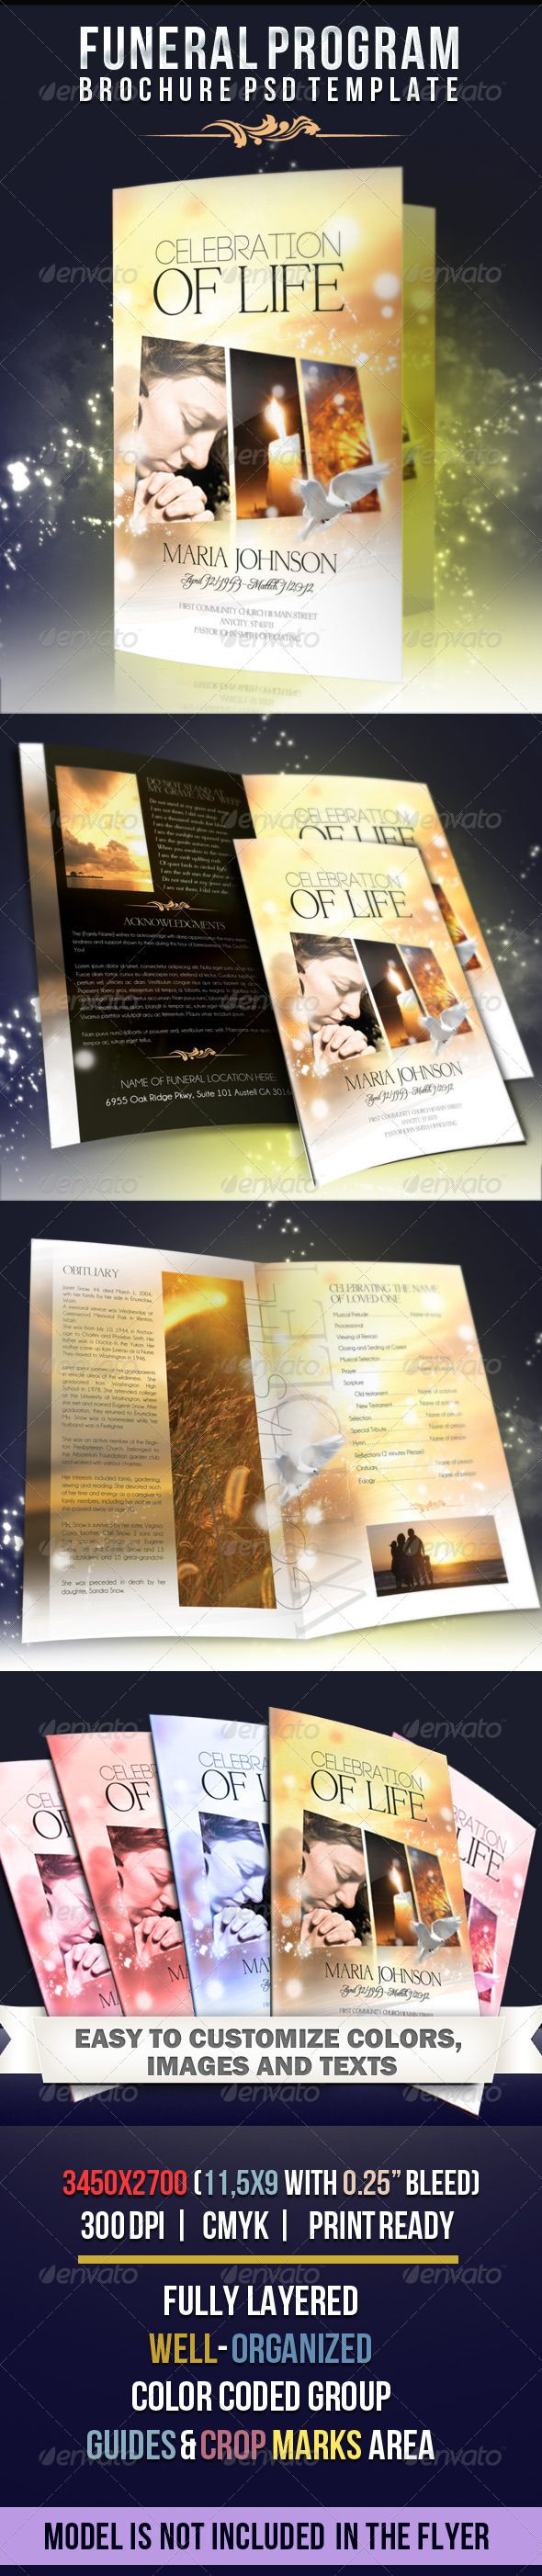 Celebration of life funeral program brochure template for Program brochure templates